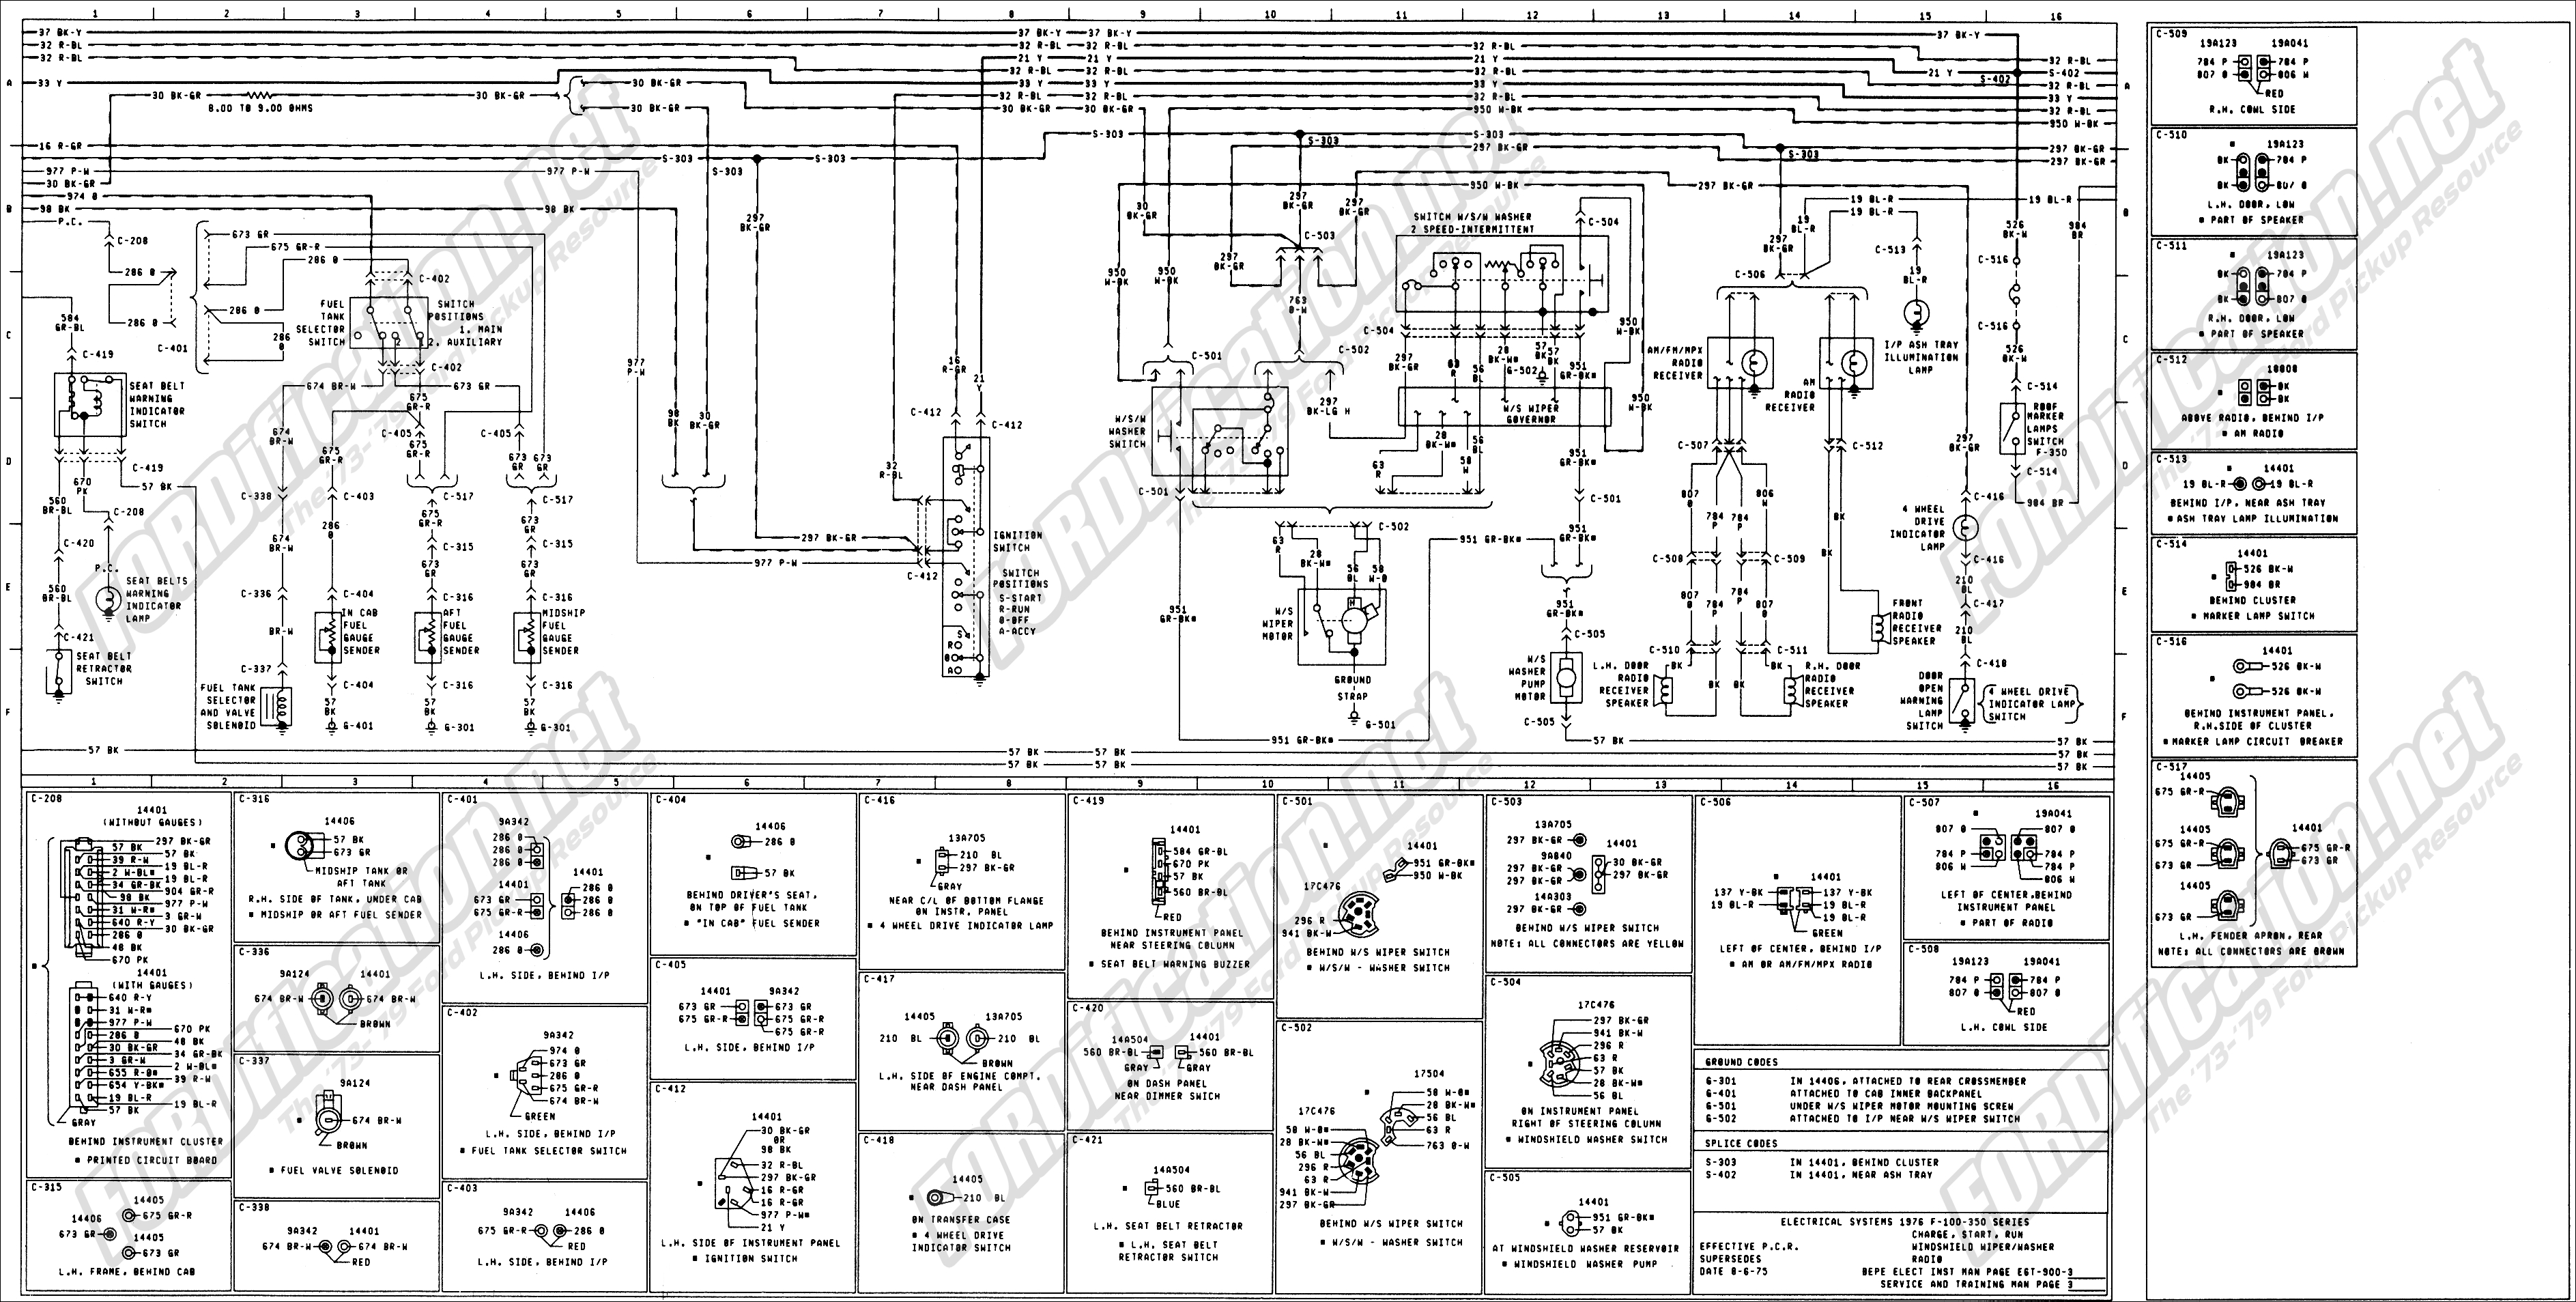 02 F350 Wiring Diagram - Wiring Diagram Write  Mins Wiring Diagram on snatch block diagrams, lighting diagrams, honda motorcycle repair diagrams, switch diagrams, led circuit diagrams, motor diagrams, friendship bracelet diagrams, electrical diagrams, smart car diagrams, hvac diagrams, transformer diagrams, troubleshooting diagrams, series and parallel circuits diagrams, sincgars radio configurations diagrams, electronic circuit diagrams, engine diagrams, pinout diagrams, gmc fuse box diagrams, internet of things diagrams, battery diagrams,